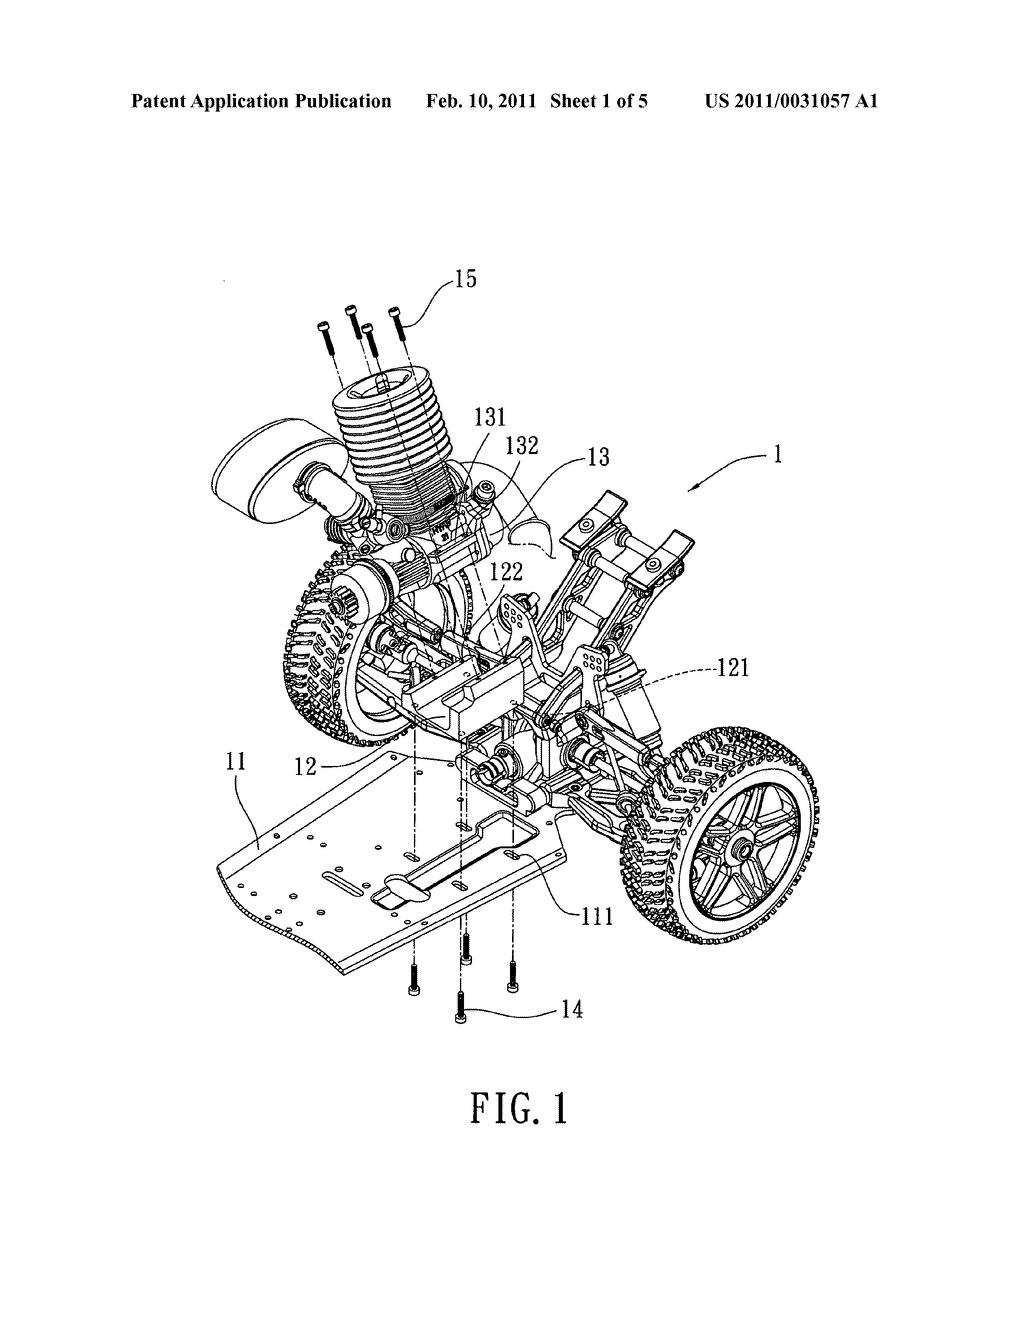 Structure for stabilizing a center of gravity of a remote car body